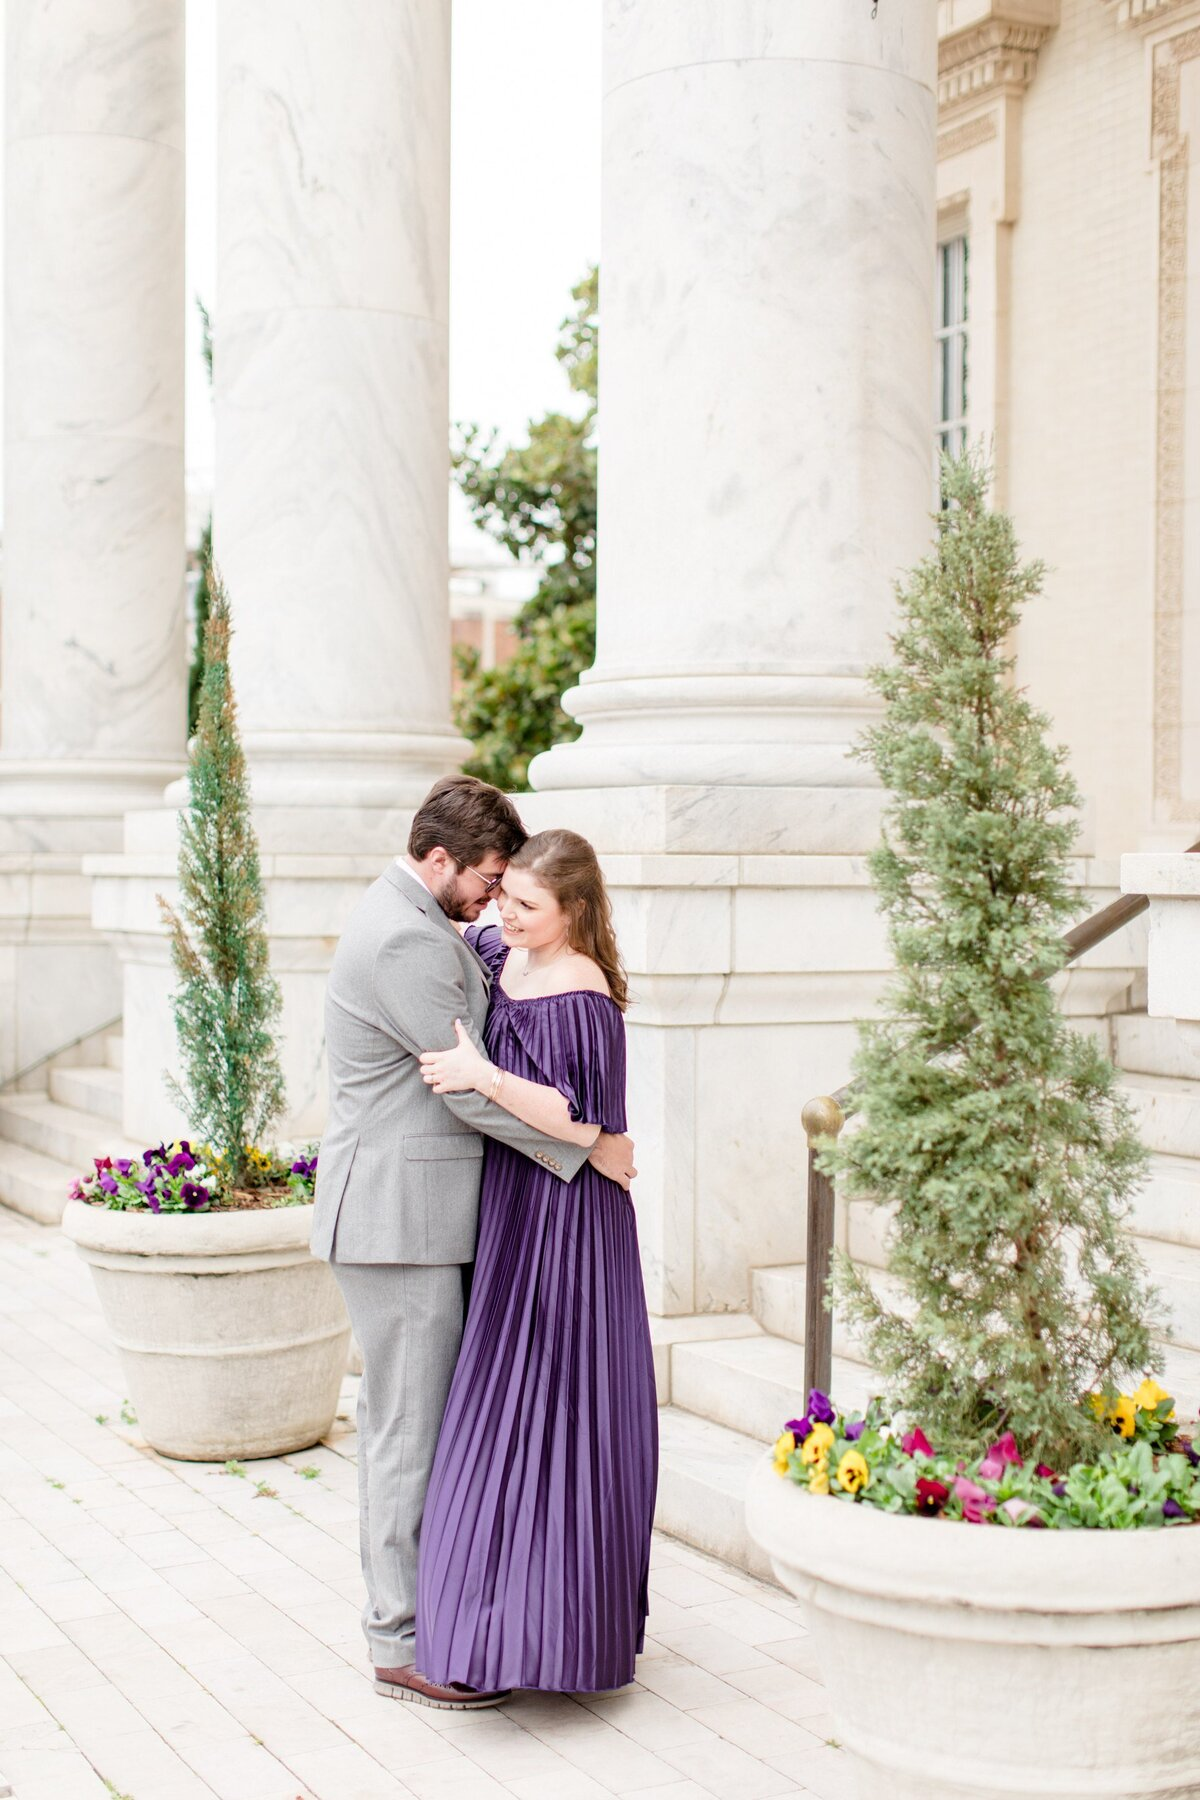 Birmingham, Alabama Wedding Photographers - Katie & Alec Photography Engagement Galleries 11